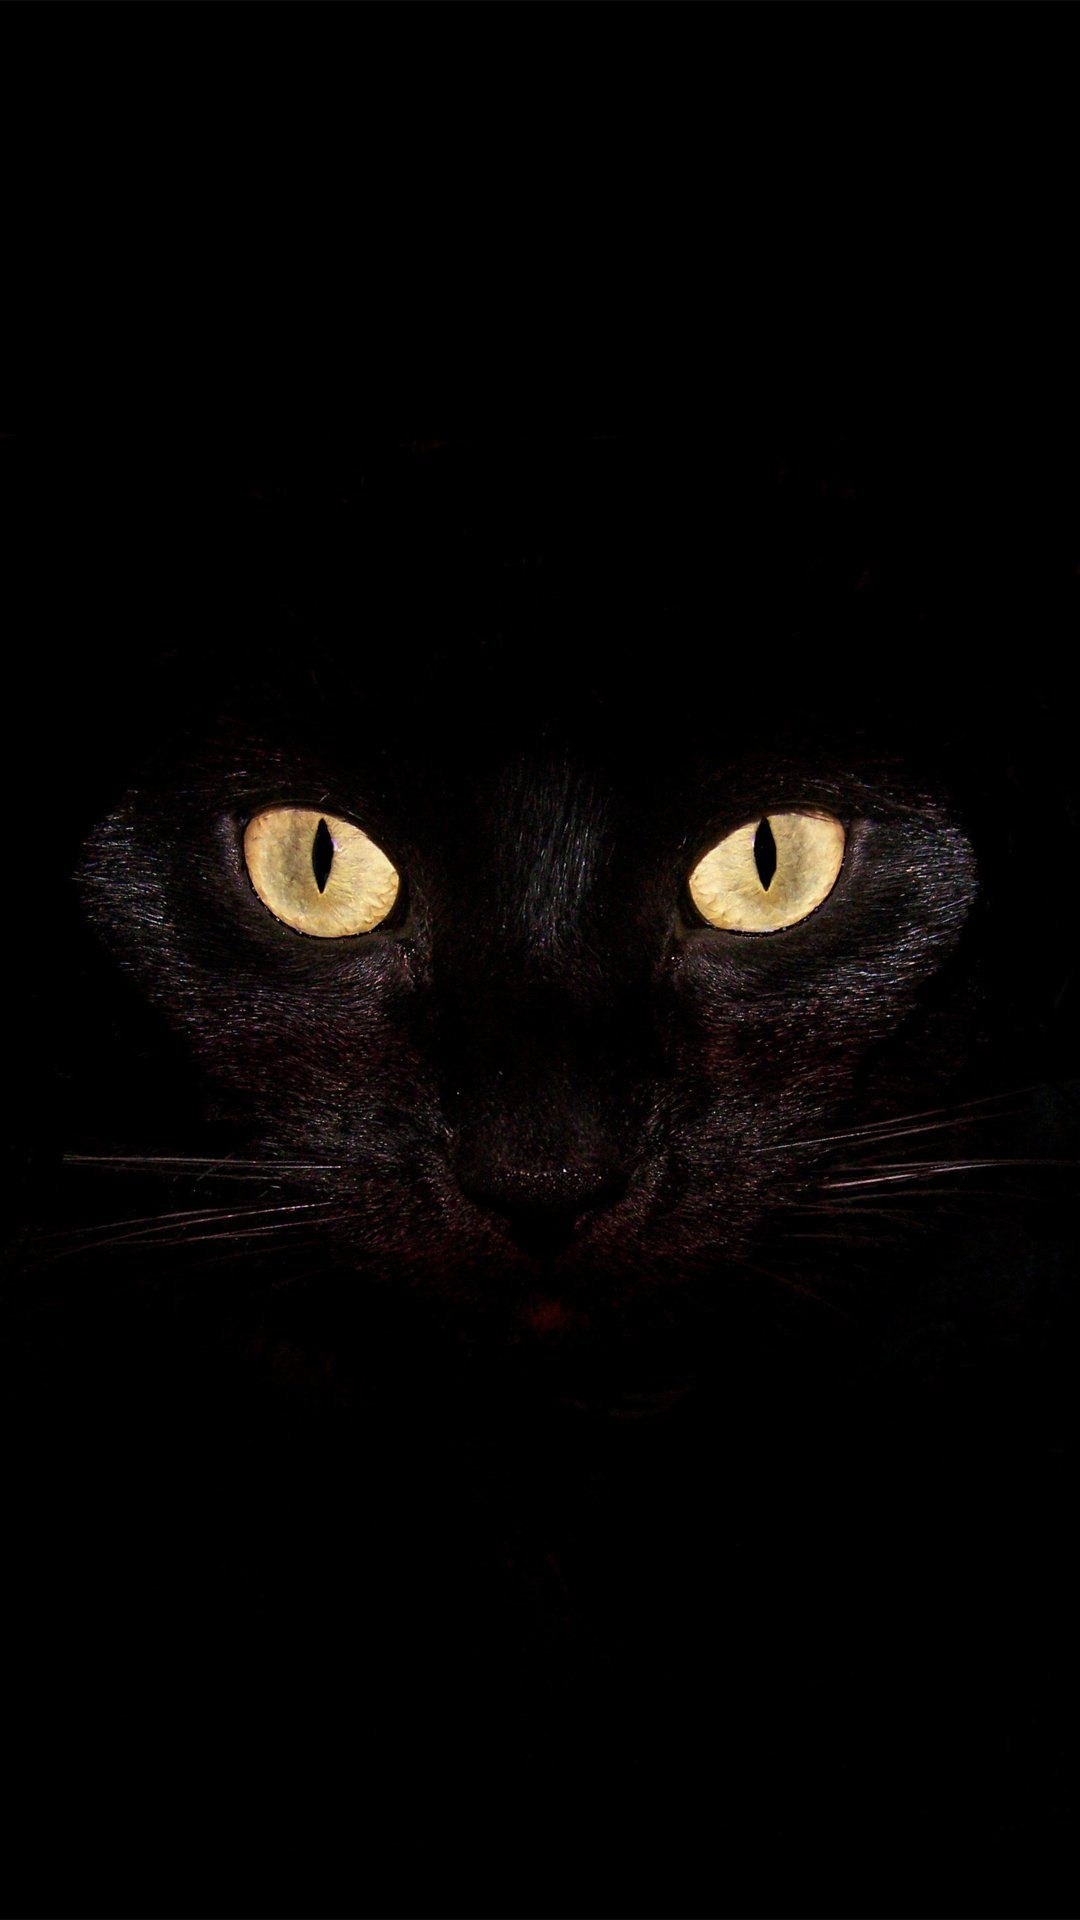 Scary Halloween Background Black Iphone 6 Plus Wallpaper Cat Background Black Cat Eyes Black Cat